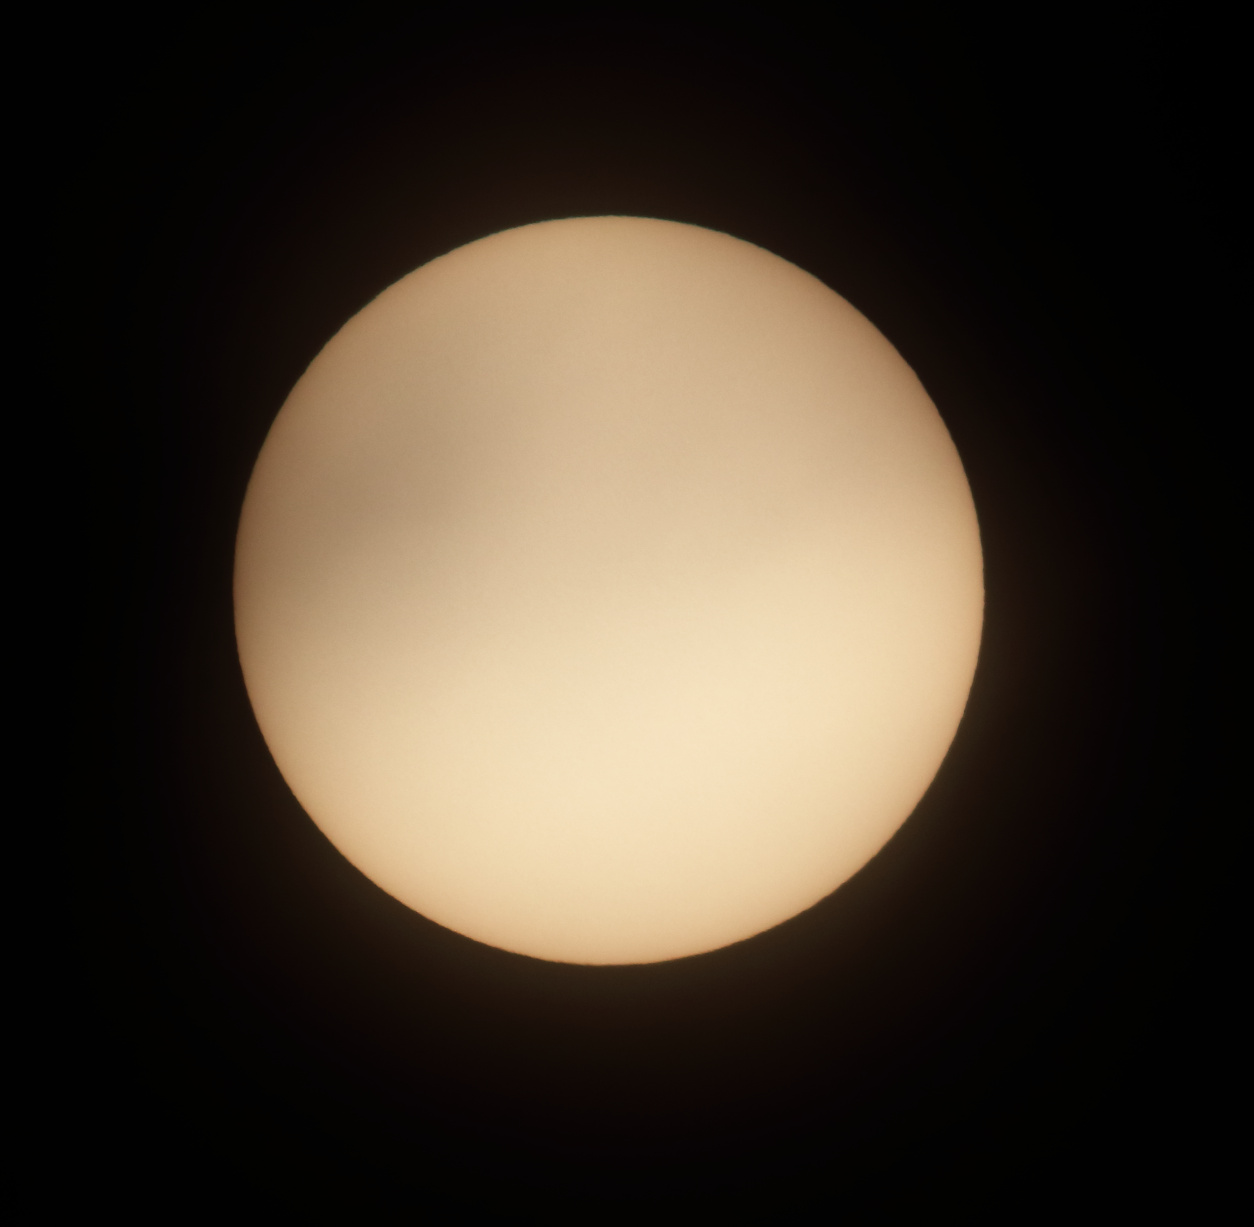 Sun on April 4, 2020 with no sunspots.